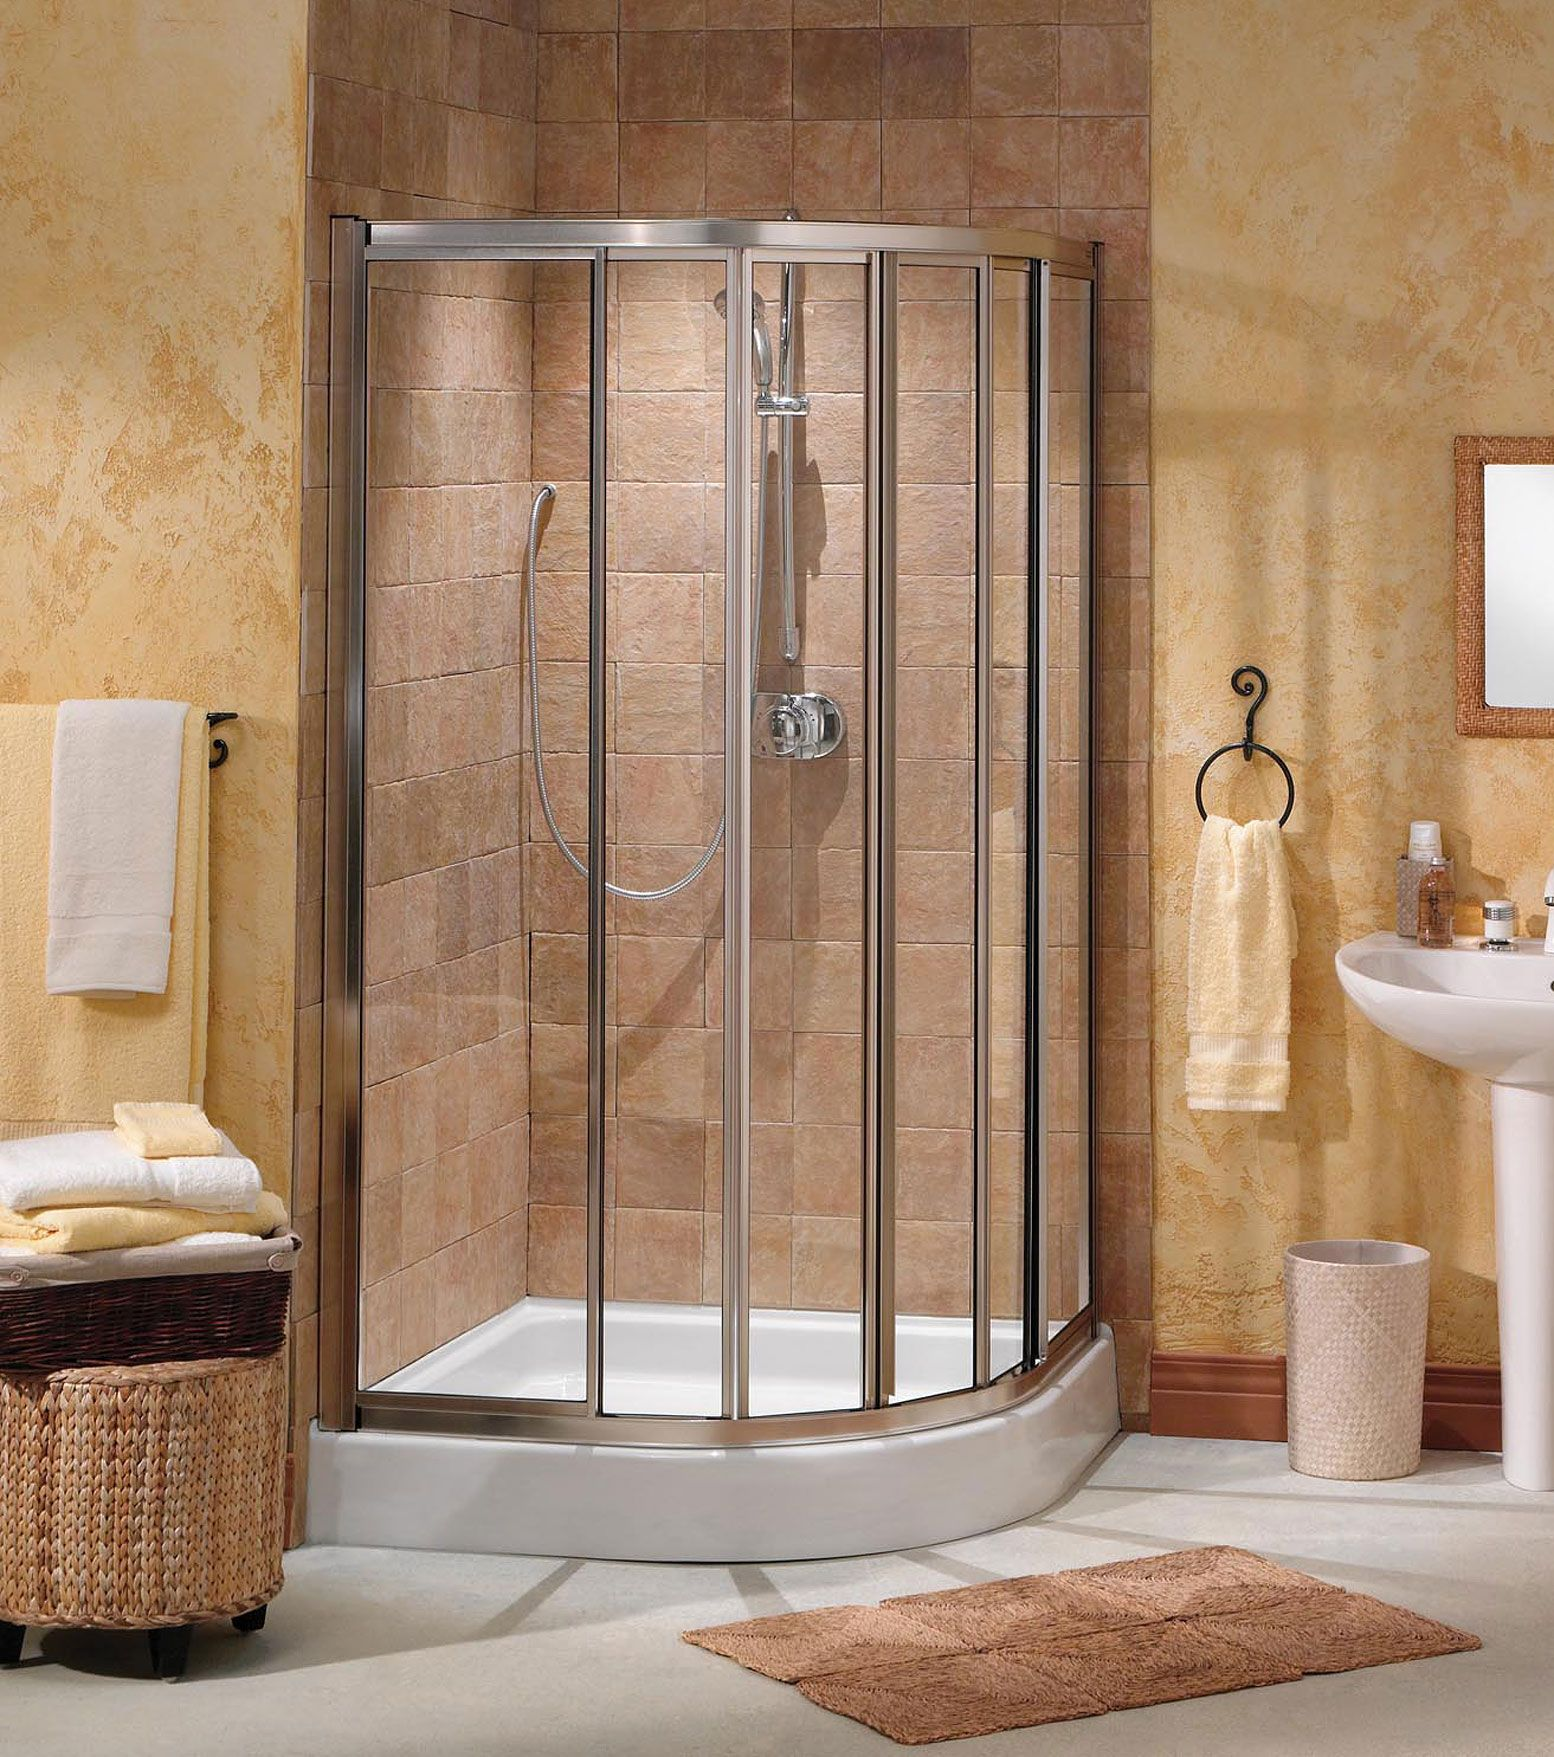 Contoura NeoRound Corner Shower Door 40X40 137540